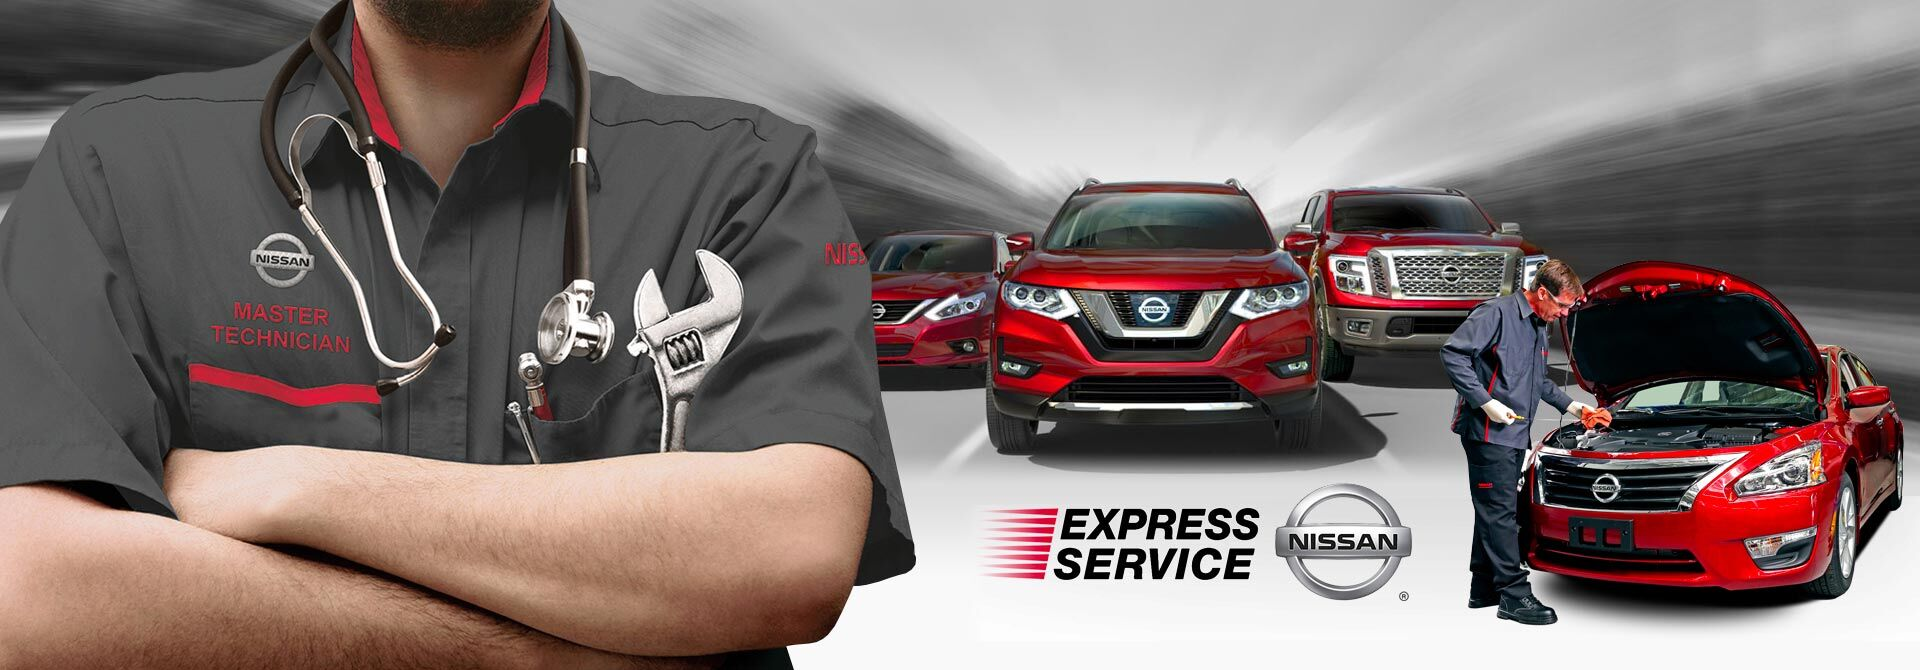 Express Service at MY Nissan